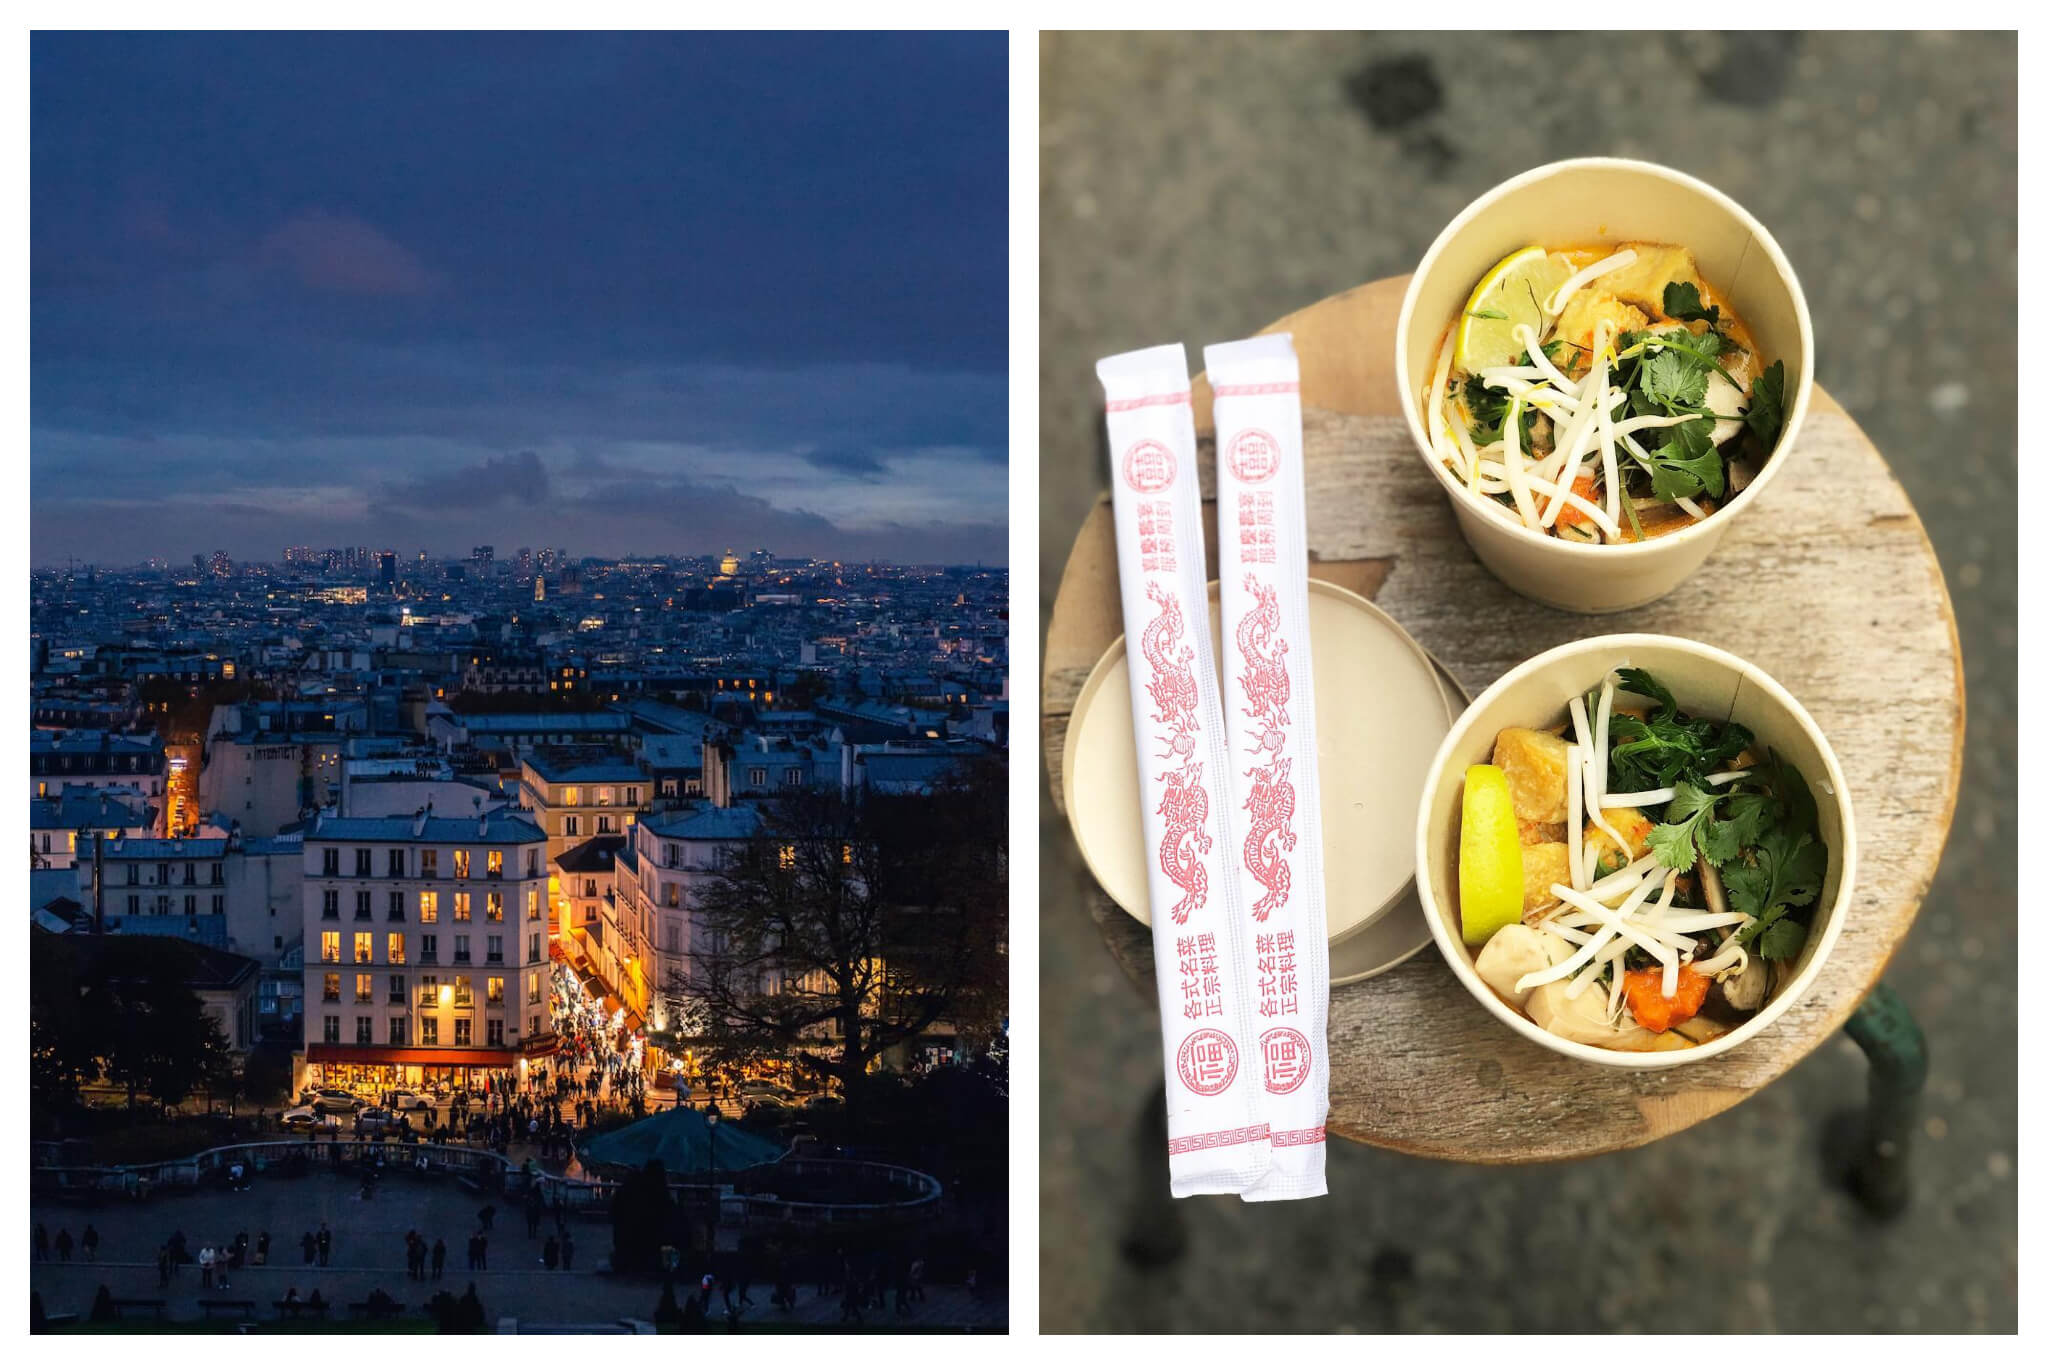 Left: A view of the bottom of Montmartre is visible under the blue and purple tones of dusk, bright orange light illuminates from the buildings and street in the middle of the photo, Right: Two pairs of chopsticks and bowls of Southeast-Asian food from The Hood in Paris sit on a wooden stool.